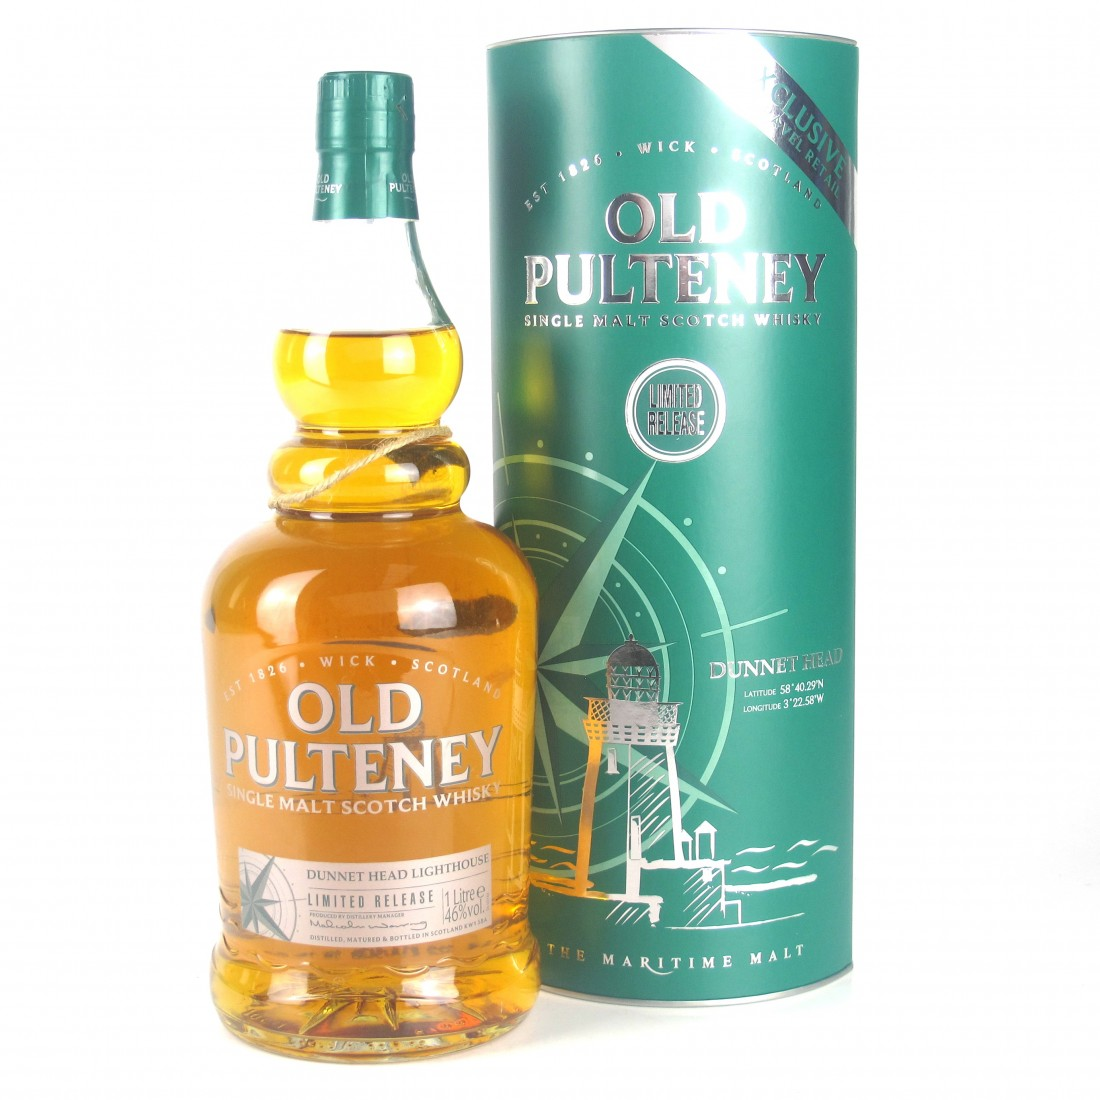 Old Pulteney Dunnet Head 1 Litre / Travel Retail Exclusive